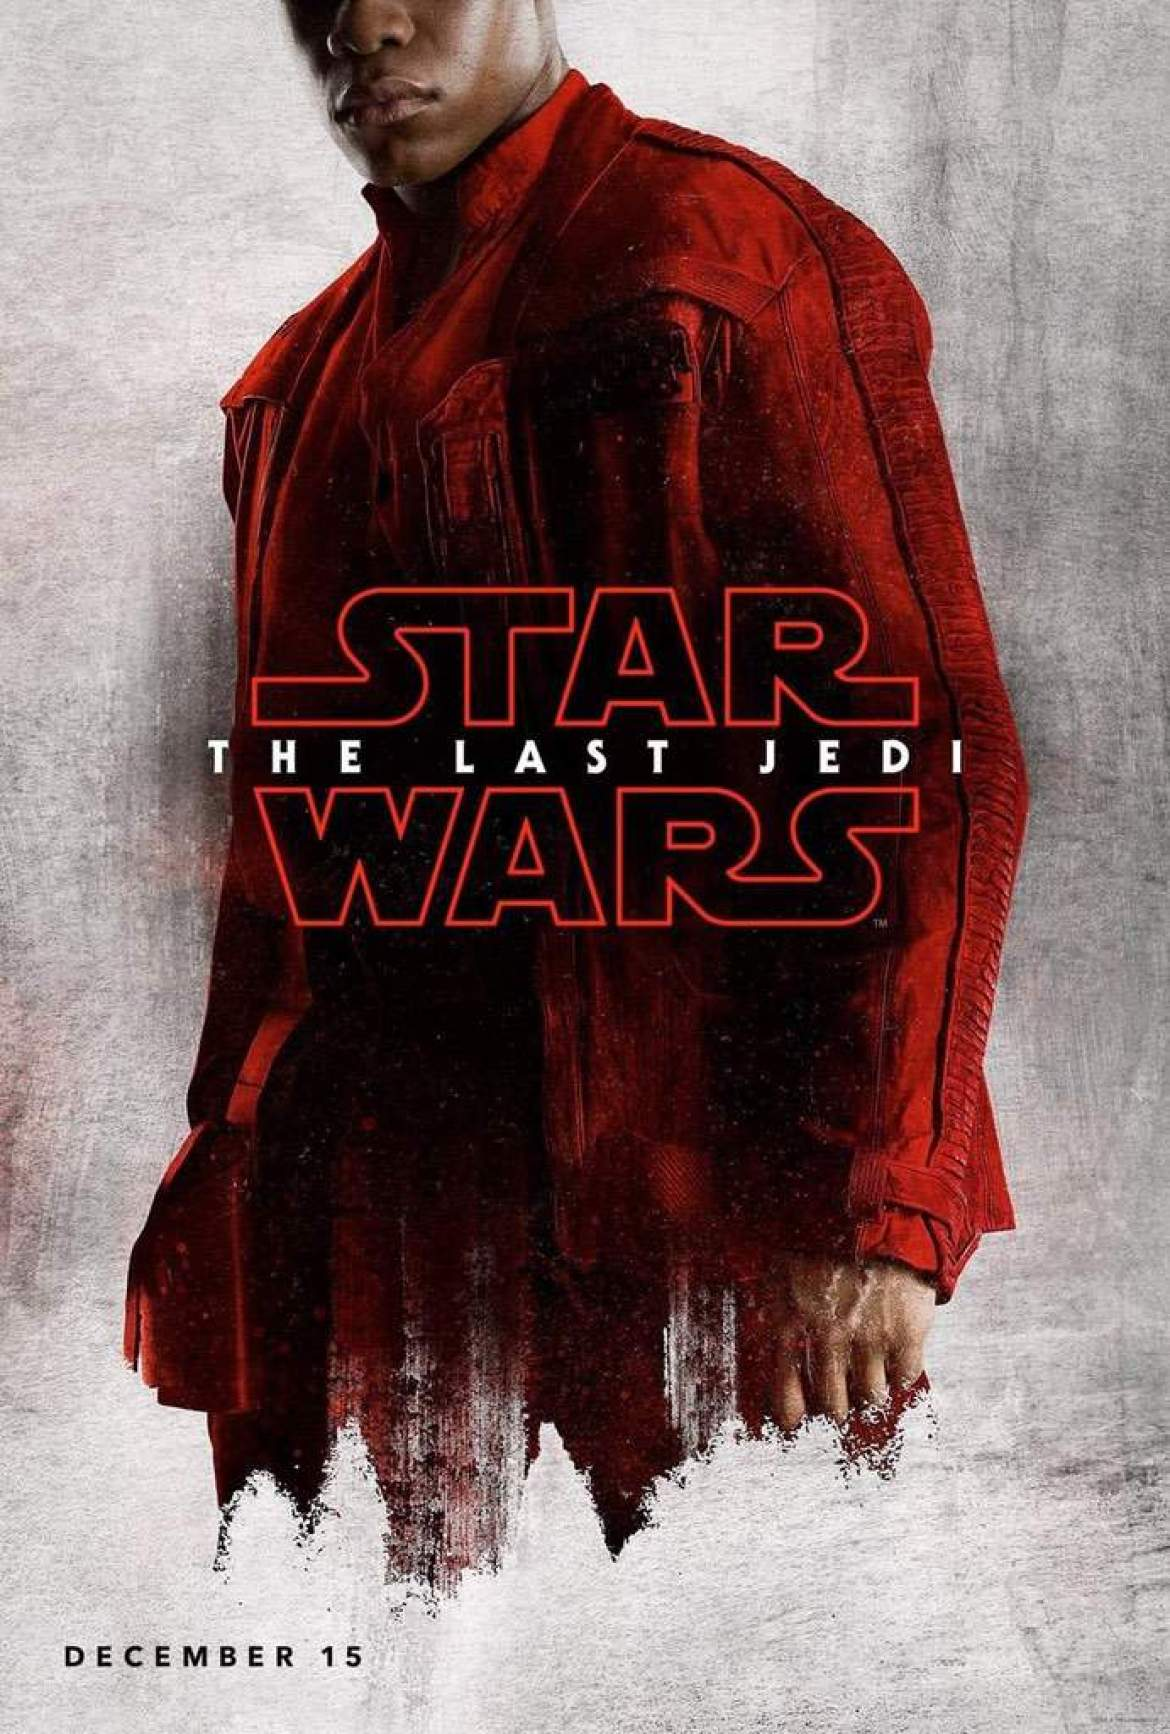 IMG 9262 - Six Star Wars: The Last Jedi character posters